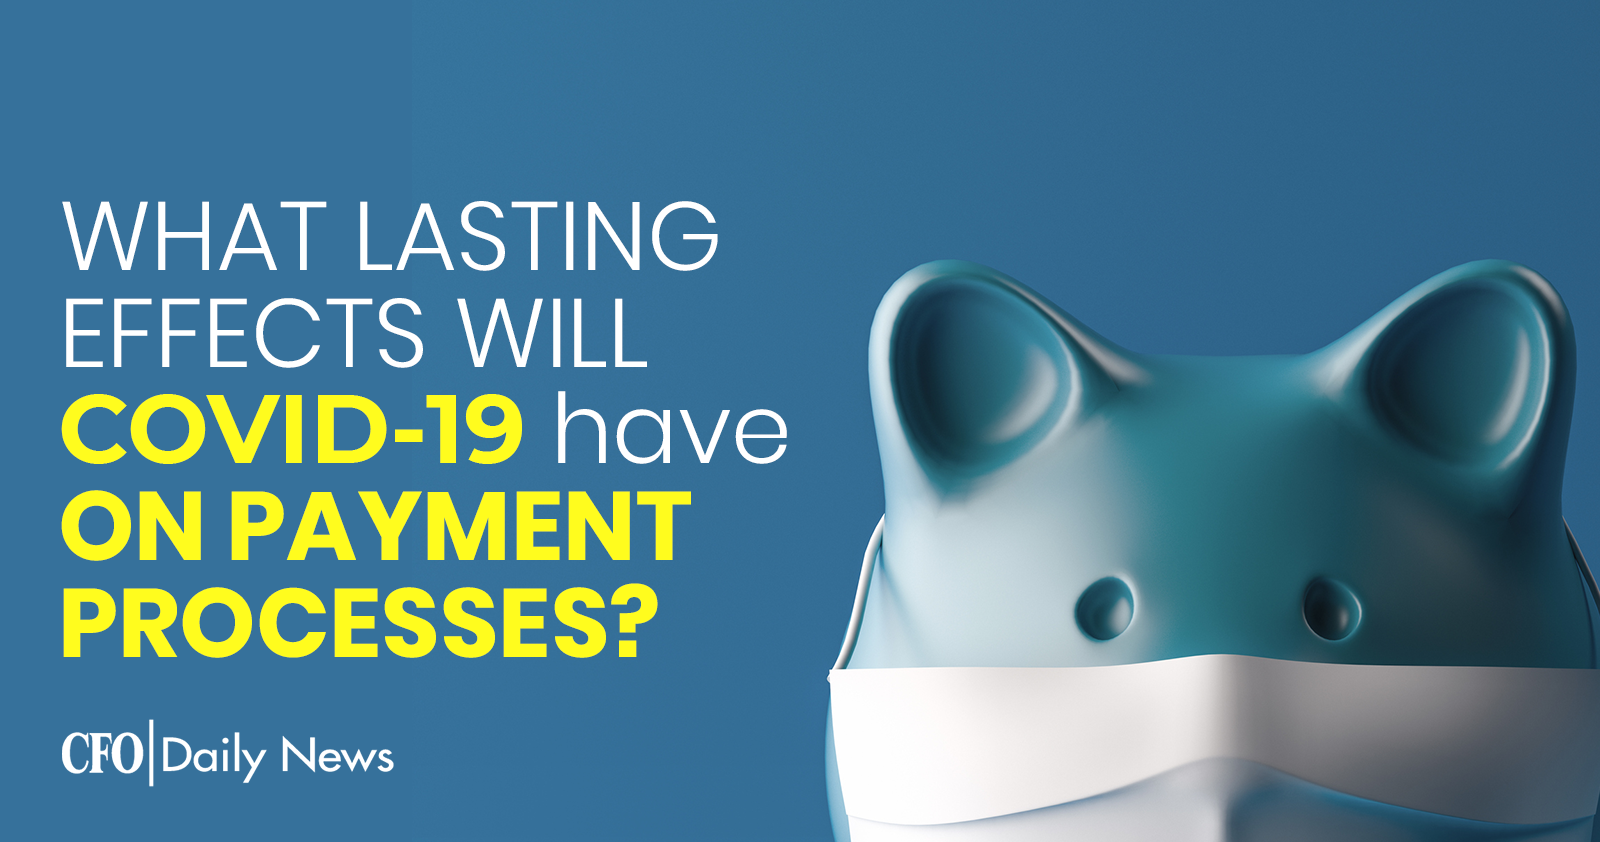 what lasting effects will COVID-19 have on payment processes